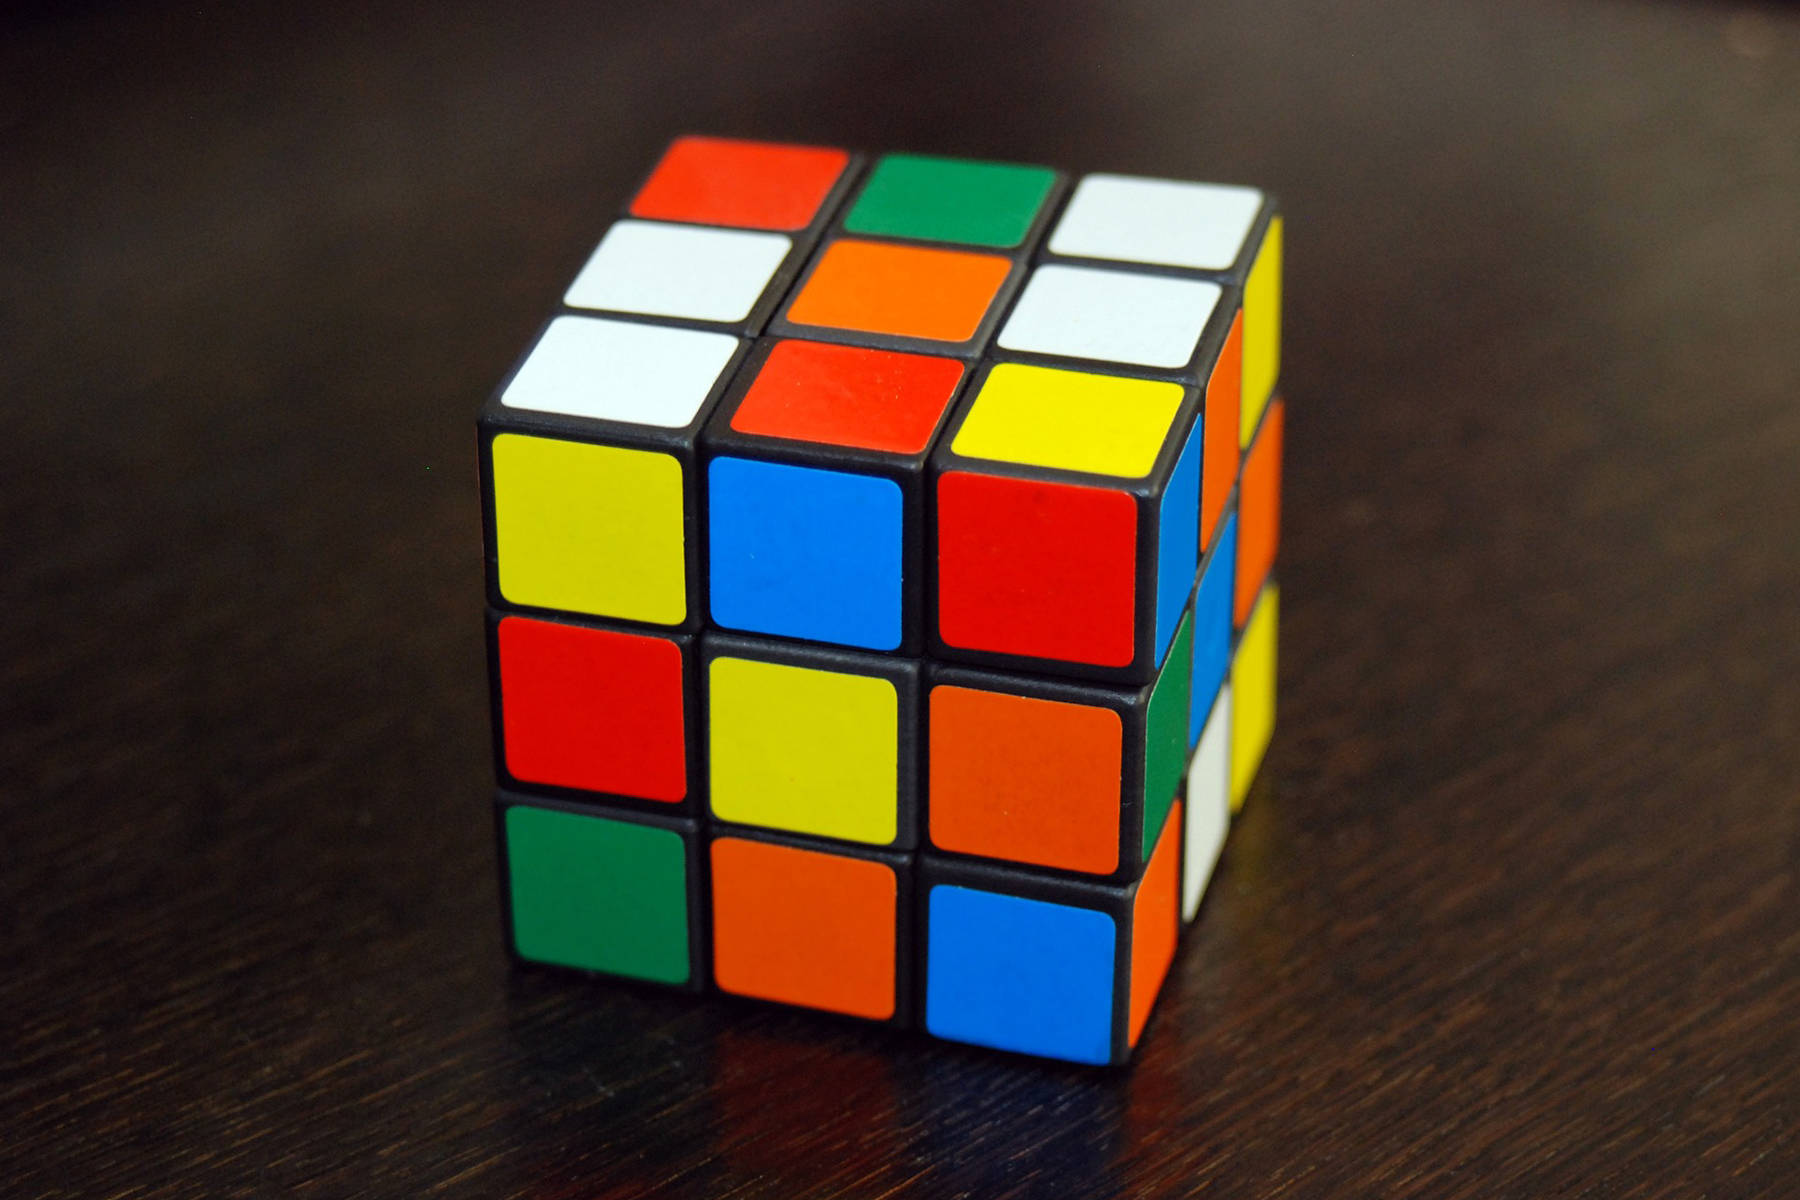 Do you know how many colours, excluding the black trim, are on a standard Rubik's Cube? (Pixabay.com)